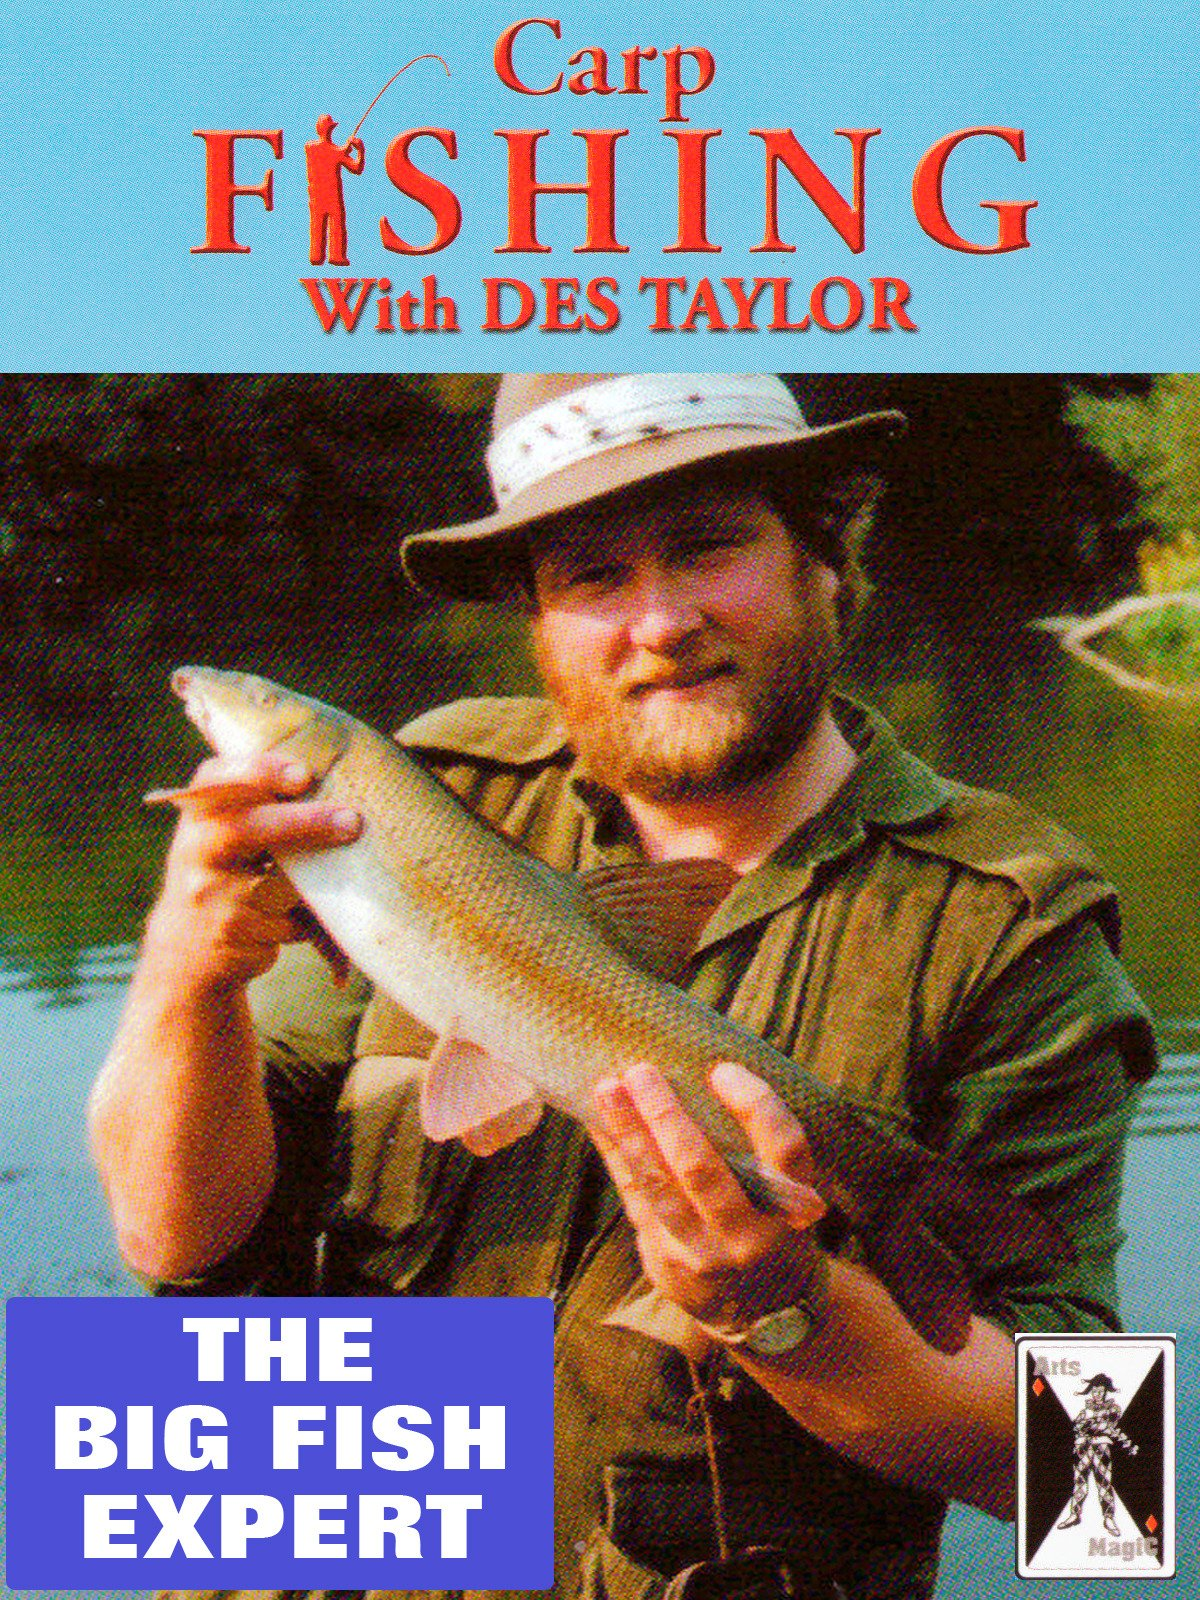 Carp Fishing with Des Taylor on Amazon Prime Video UK